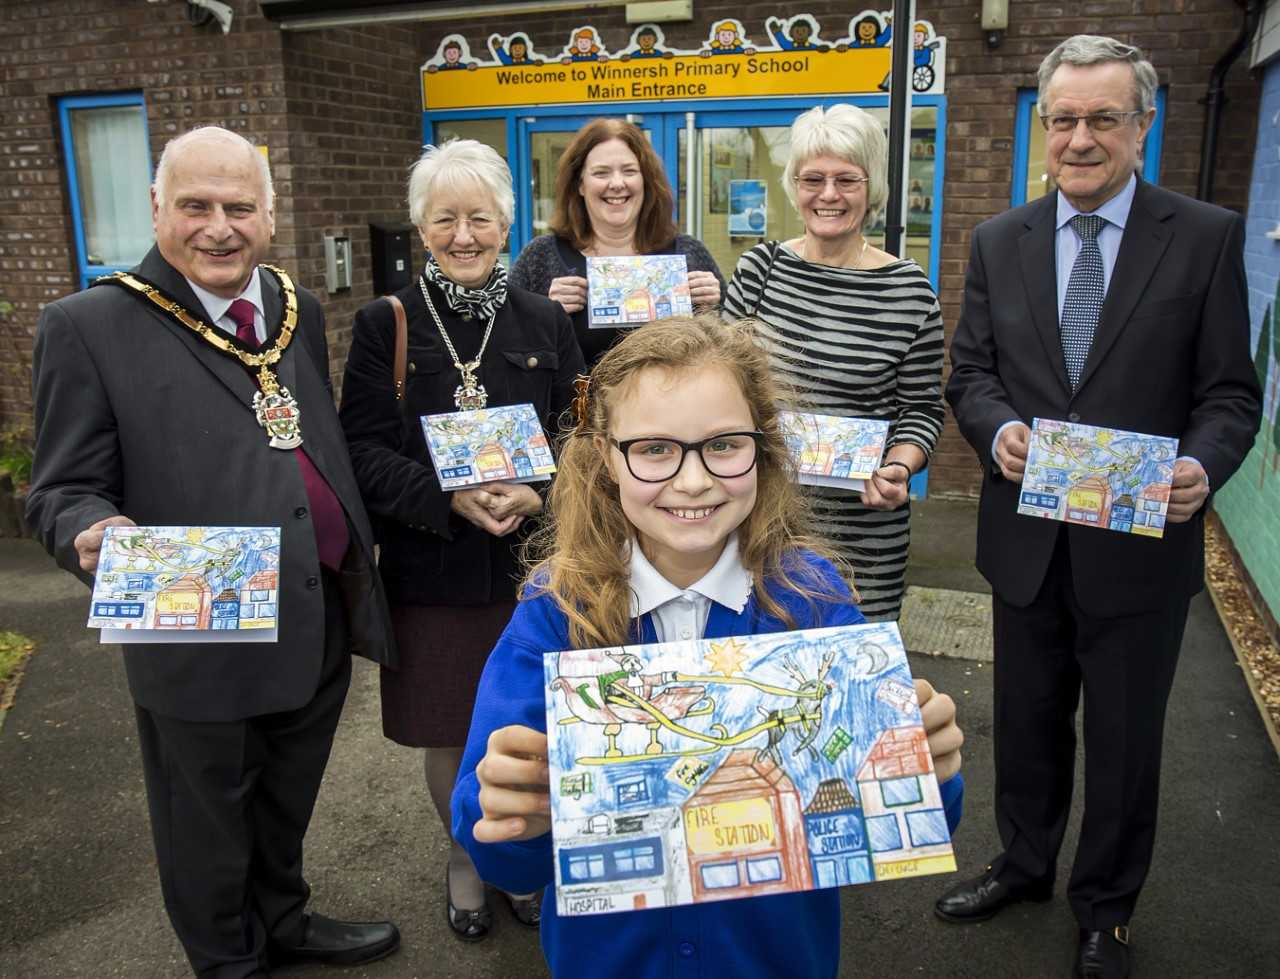 War hero remembered in Mayor's Christmas card designed by school children